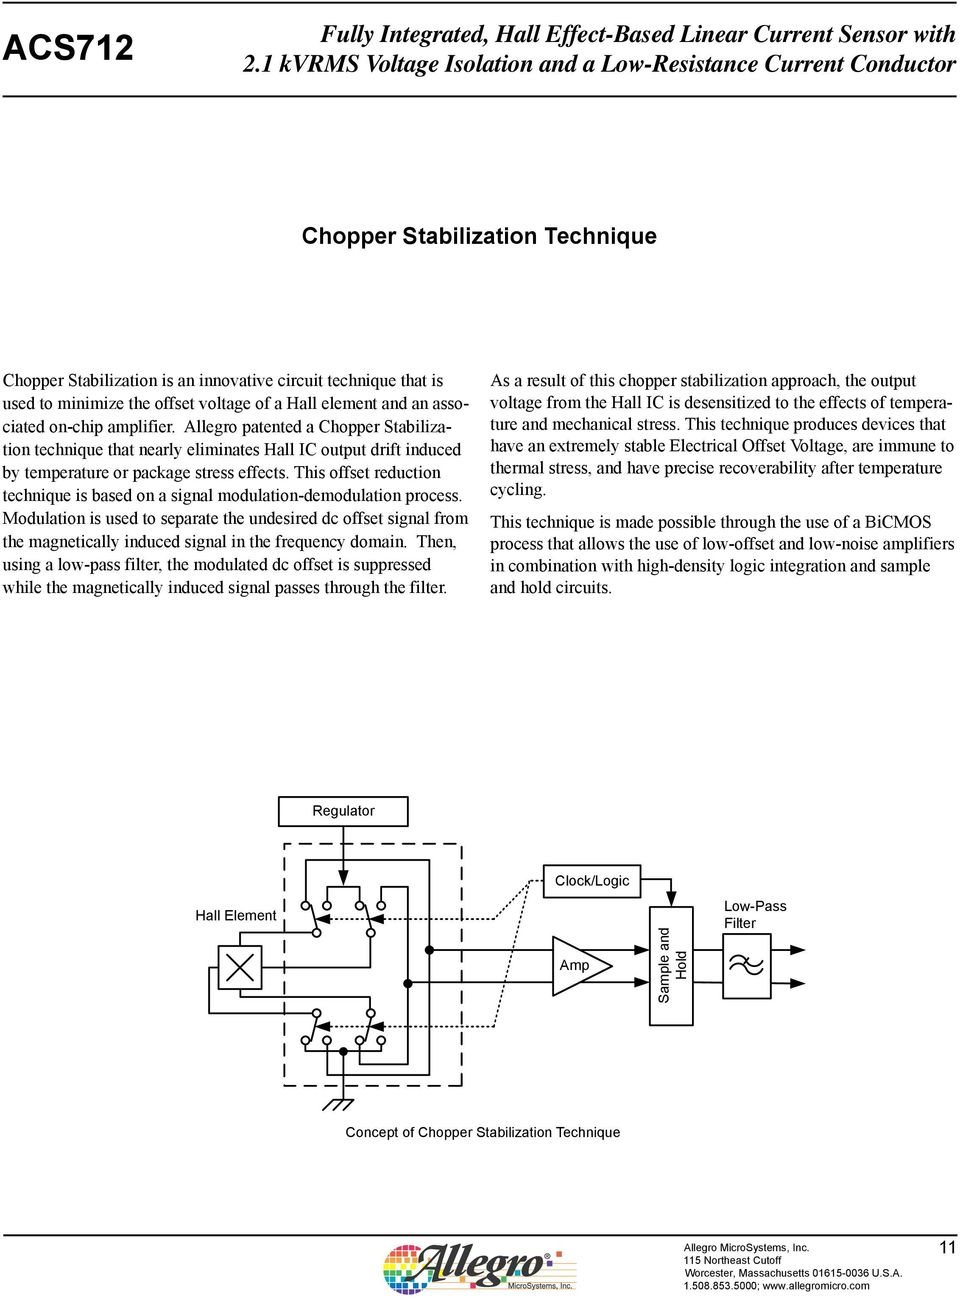 Allegro patented a Chopper Stabilization technique that nearly eliminates Hall IC output drift induced by temperature or package stress effects.